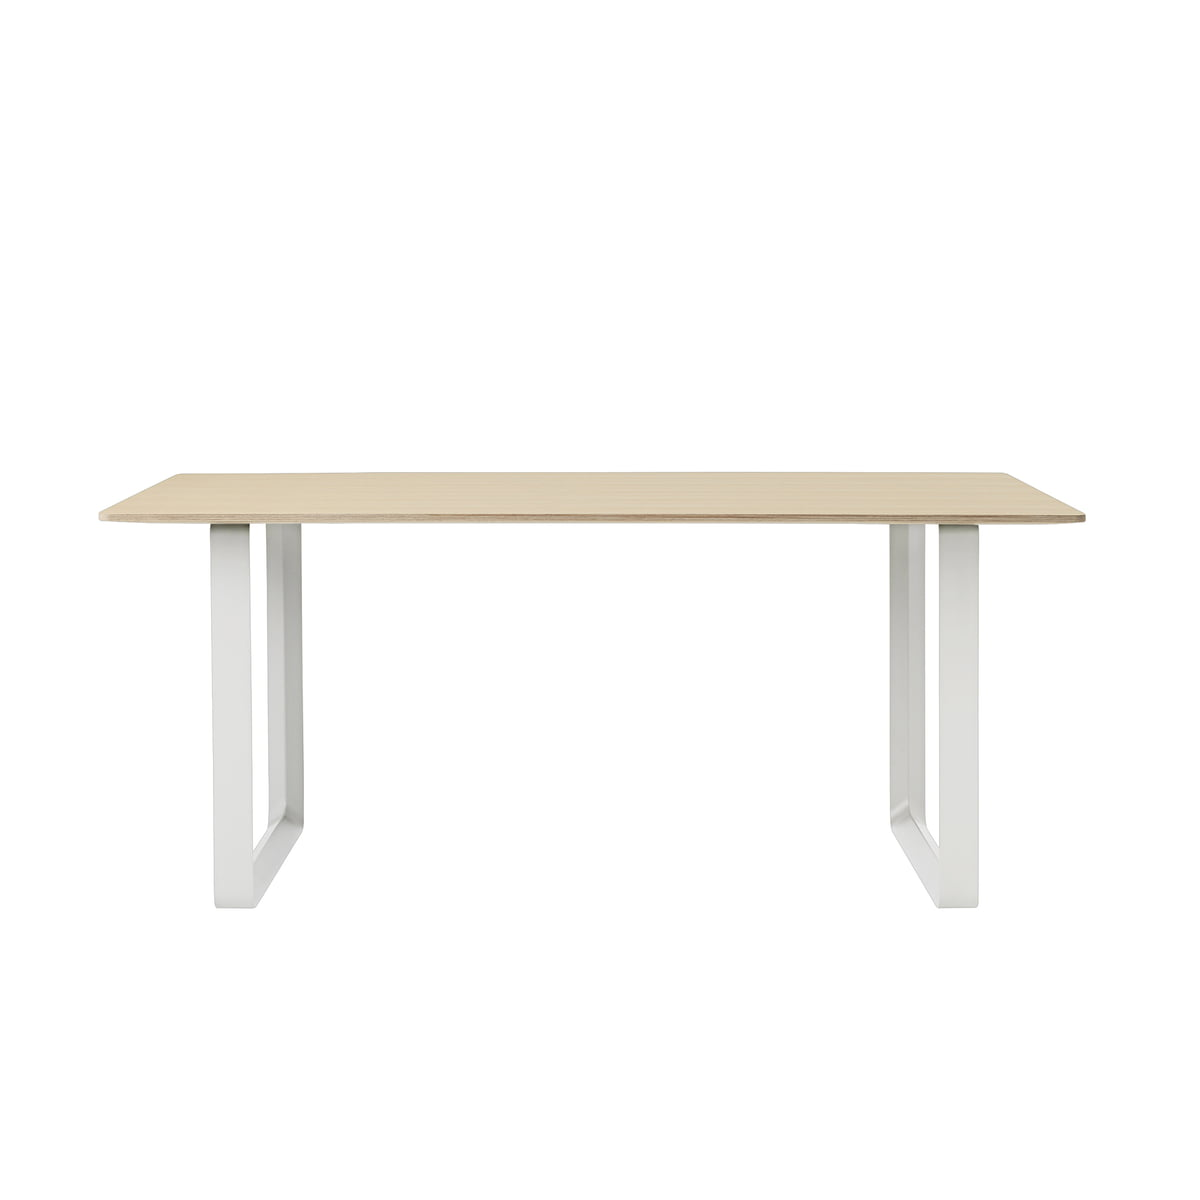 70 70 dining table 170 x 85 cm by muuto connox for Table bar 85 cm